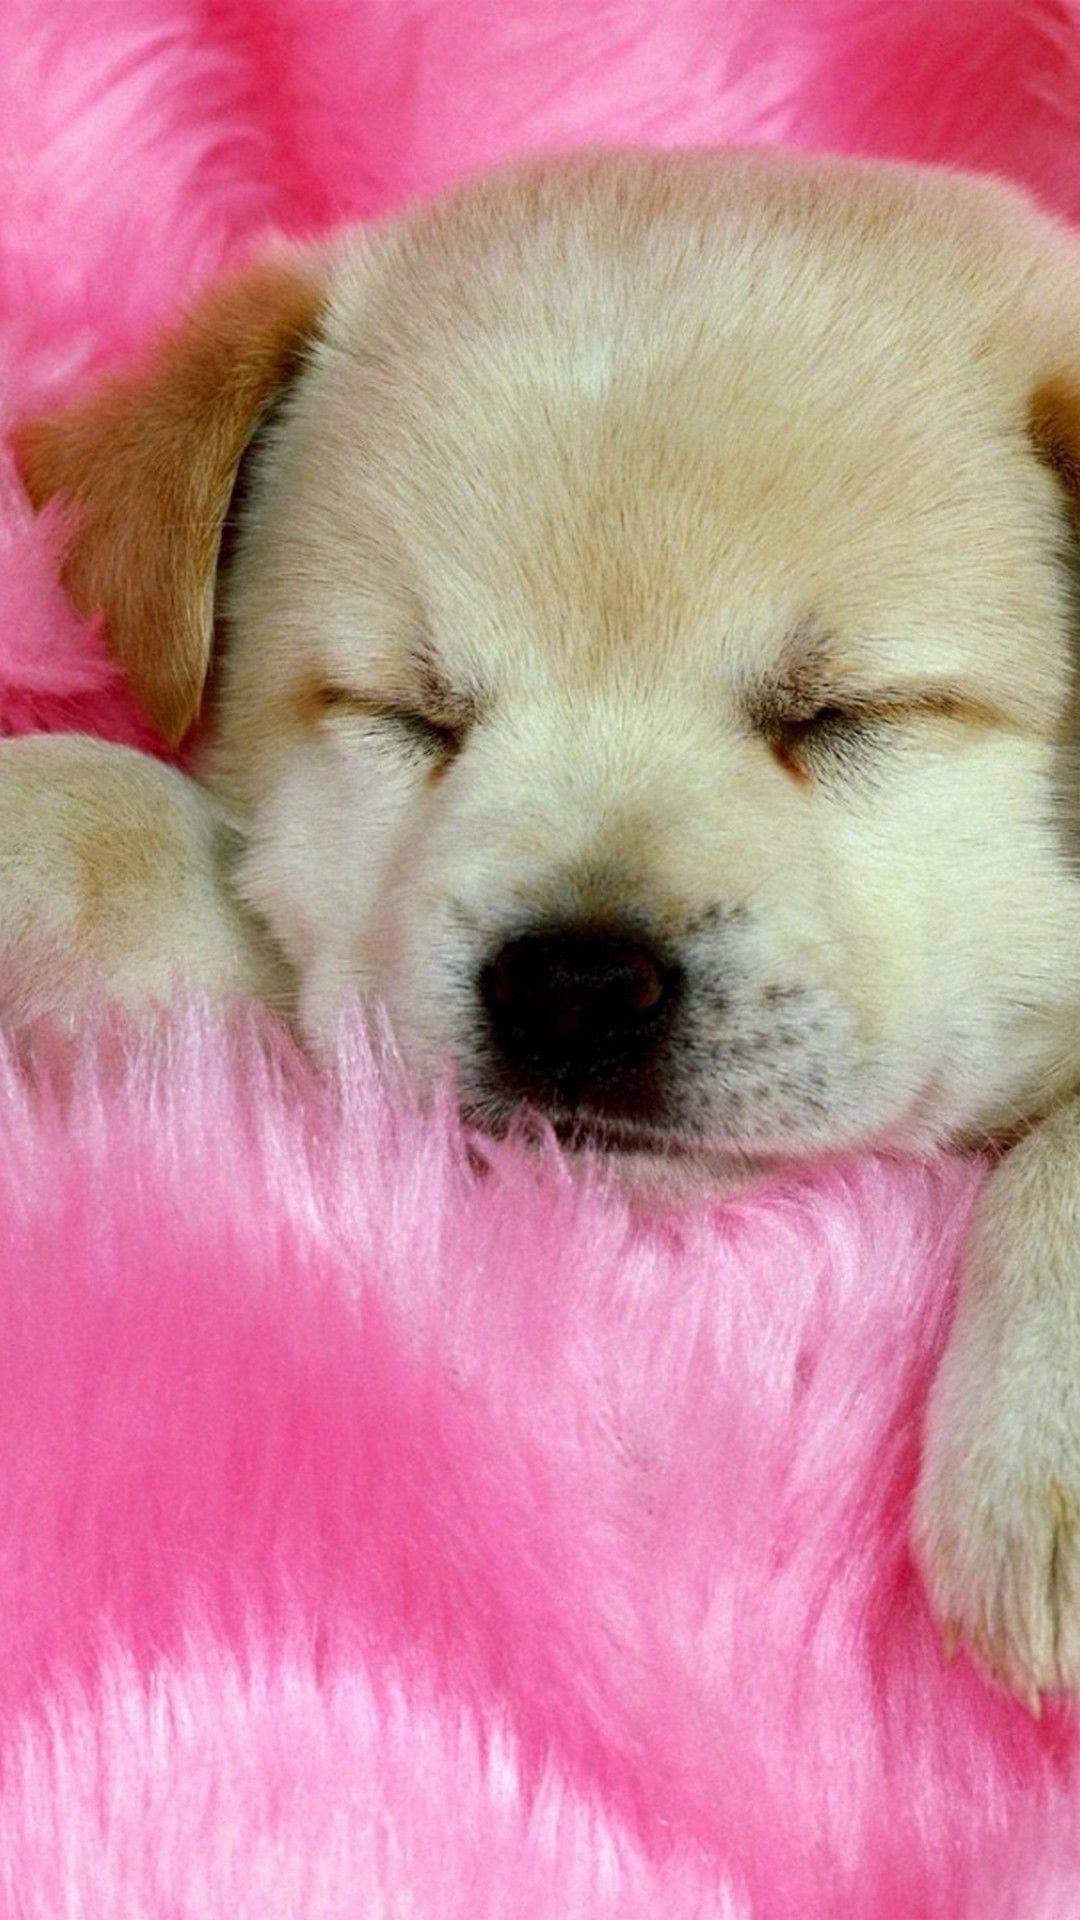 Puppies Phone Backgrounds Best Hd Wallpapers Cute Puppy Wallpaper Dog Background Cute Animals